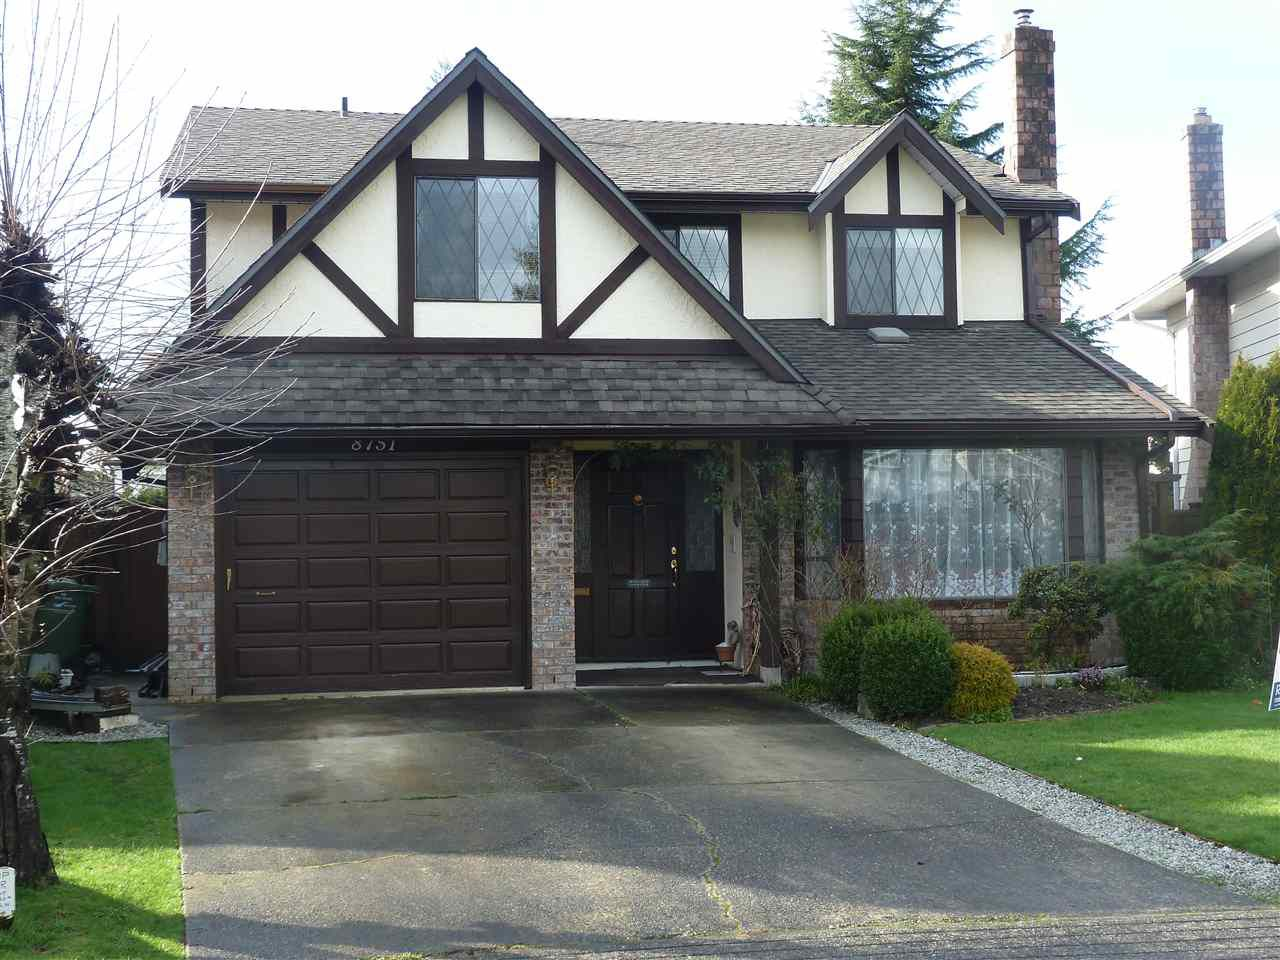 "Main Photo: 8751 DELAWARE Road in Richmond: Woodwards House for sale in ""Woodwards"" : MLS®# R2036578"